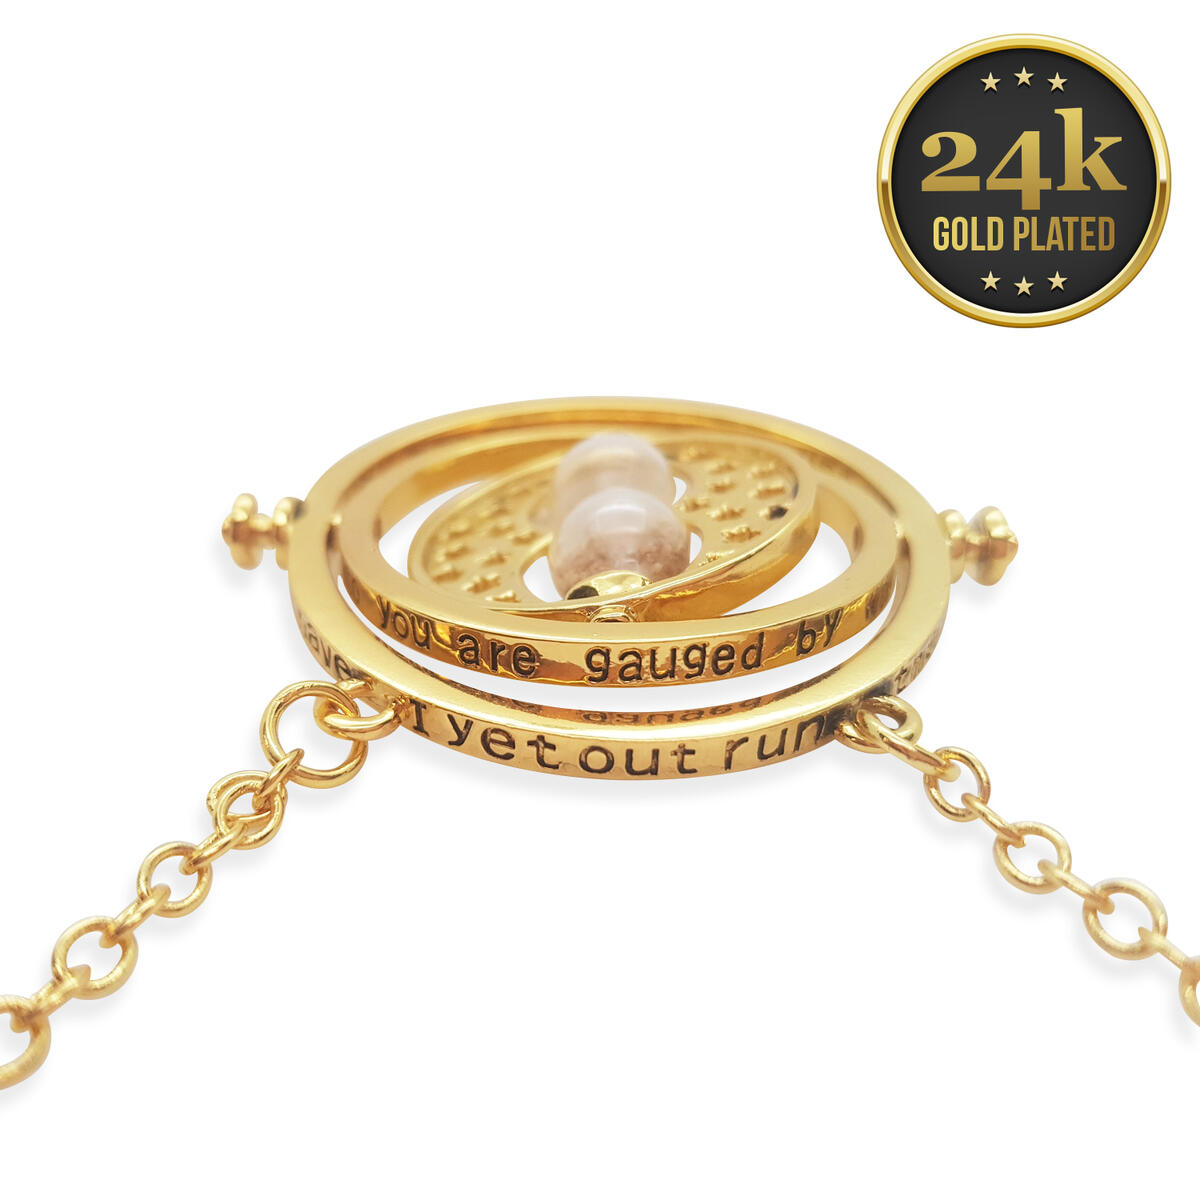 24K Gold Plated Harry Potter Time Turner Necklace In a Red Velvet Pouch and Gift Box